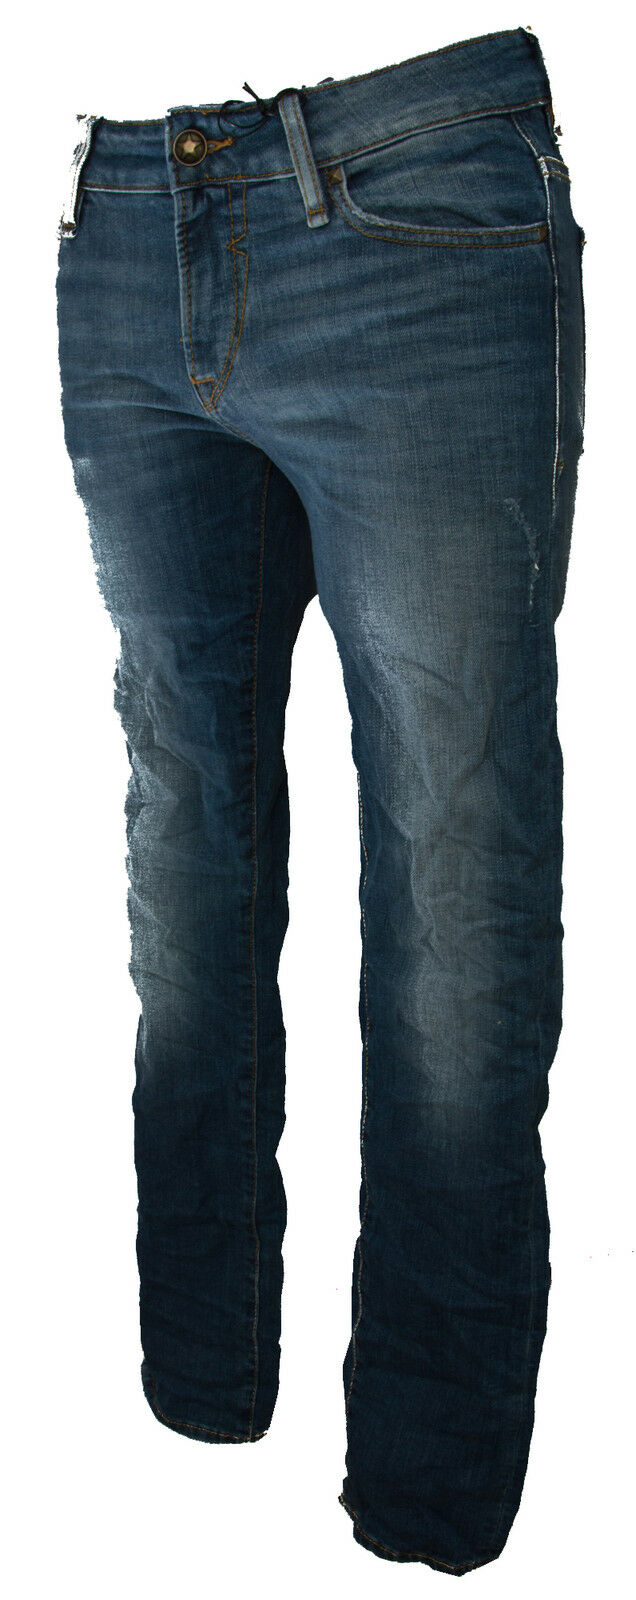 Pantalone jeans skinny  a.M52AN2  zip GUESS a.M52AN2  D1SH0 taglia 29 colore AGRE 75f1ad